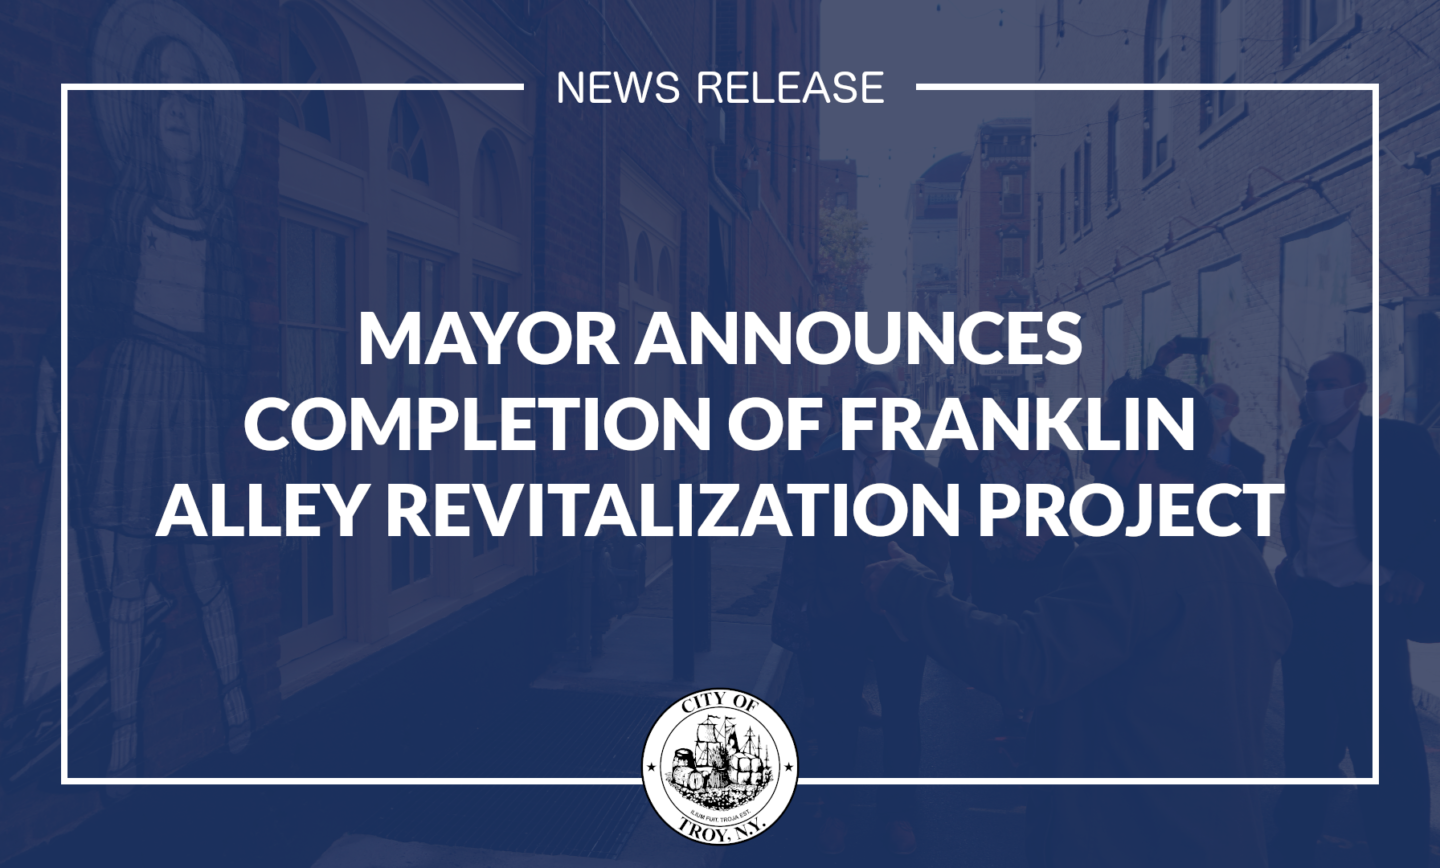 Mayor Madden Announces Completion of Franklin Alley Revitalization Project